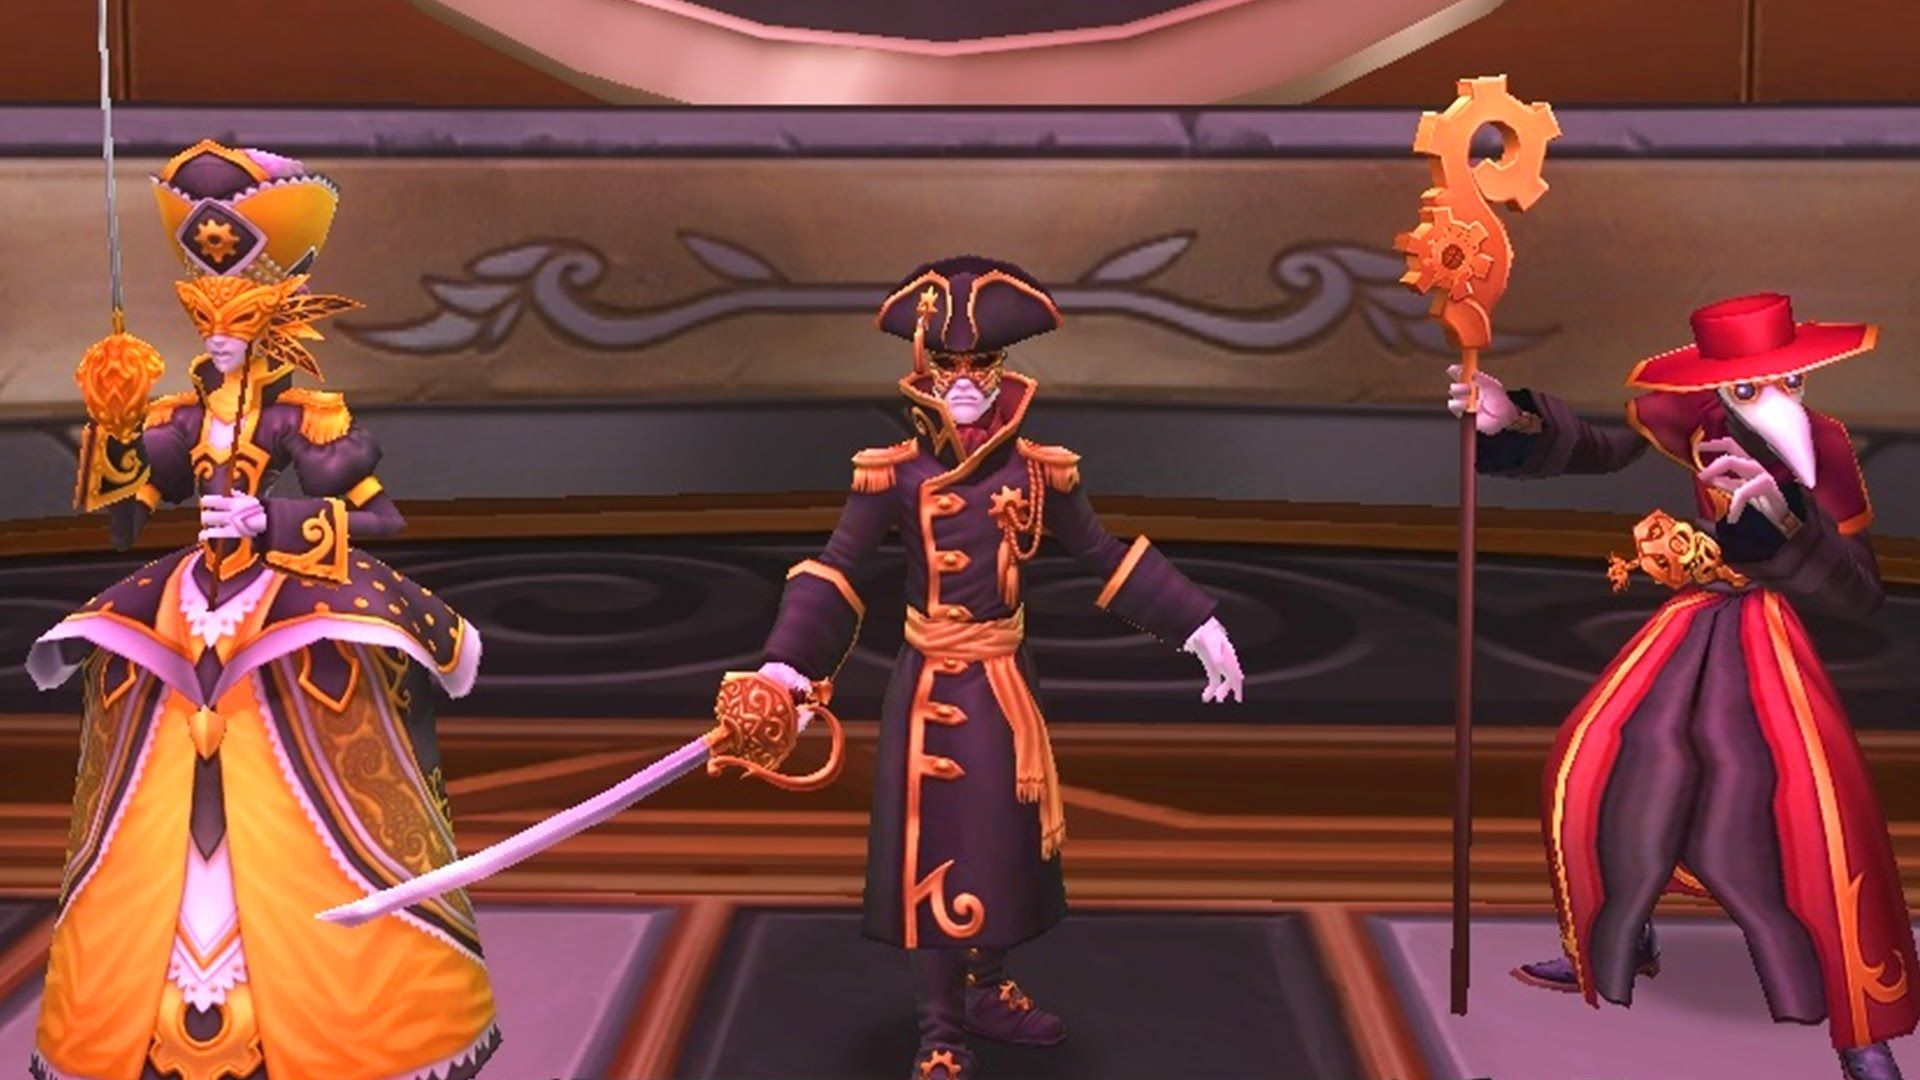 Pirate101: KANE FINAL BATTLE! - Test Realm | Pirate 101 in